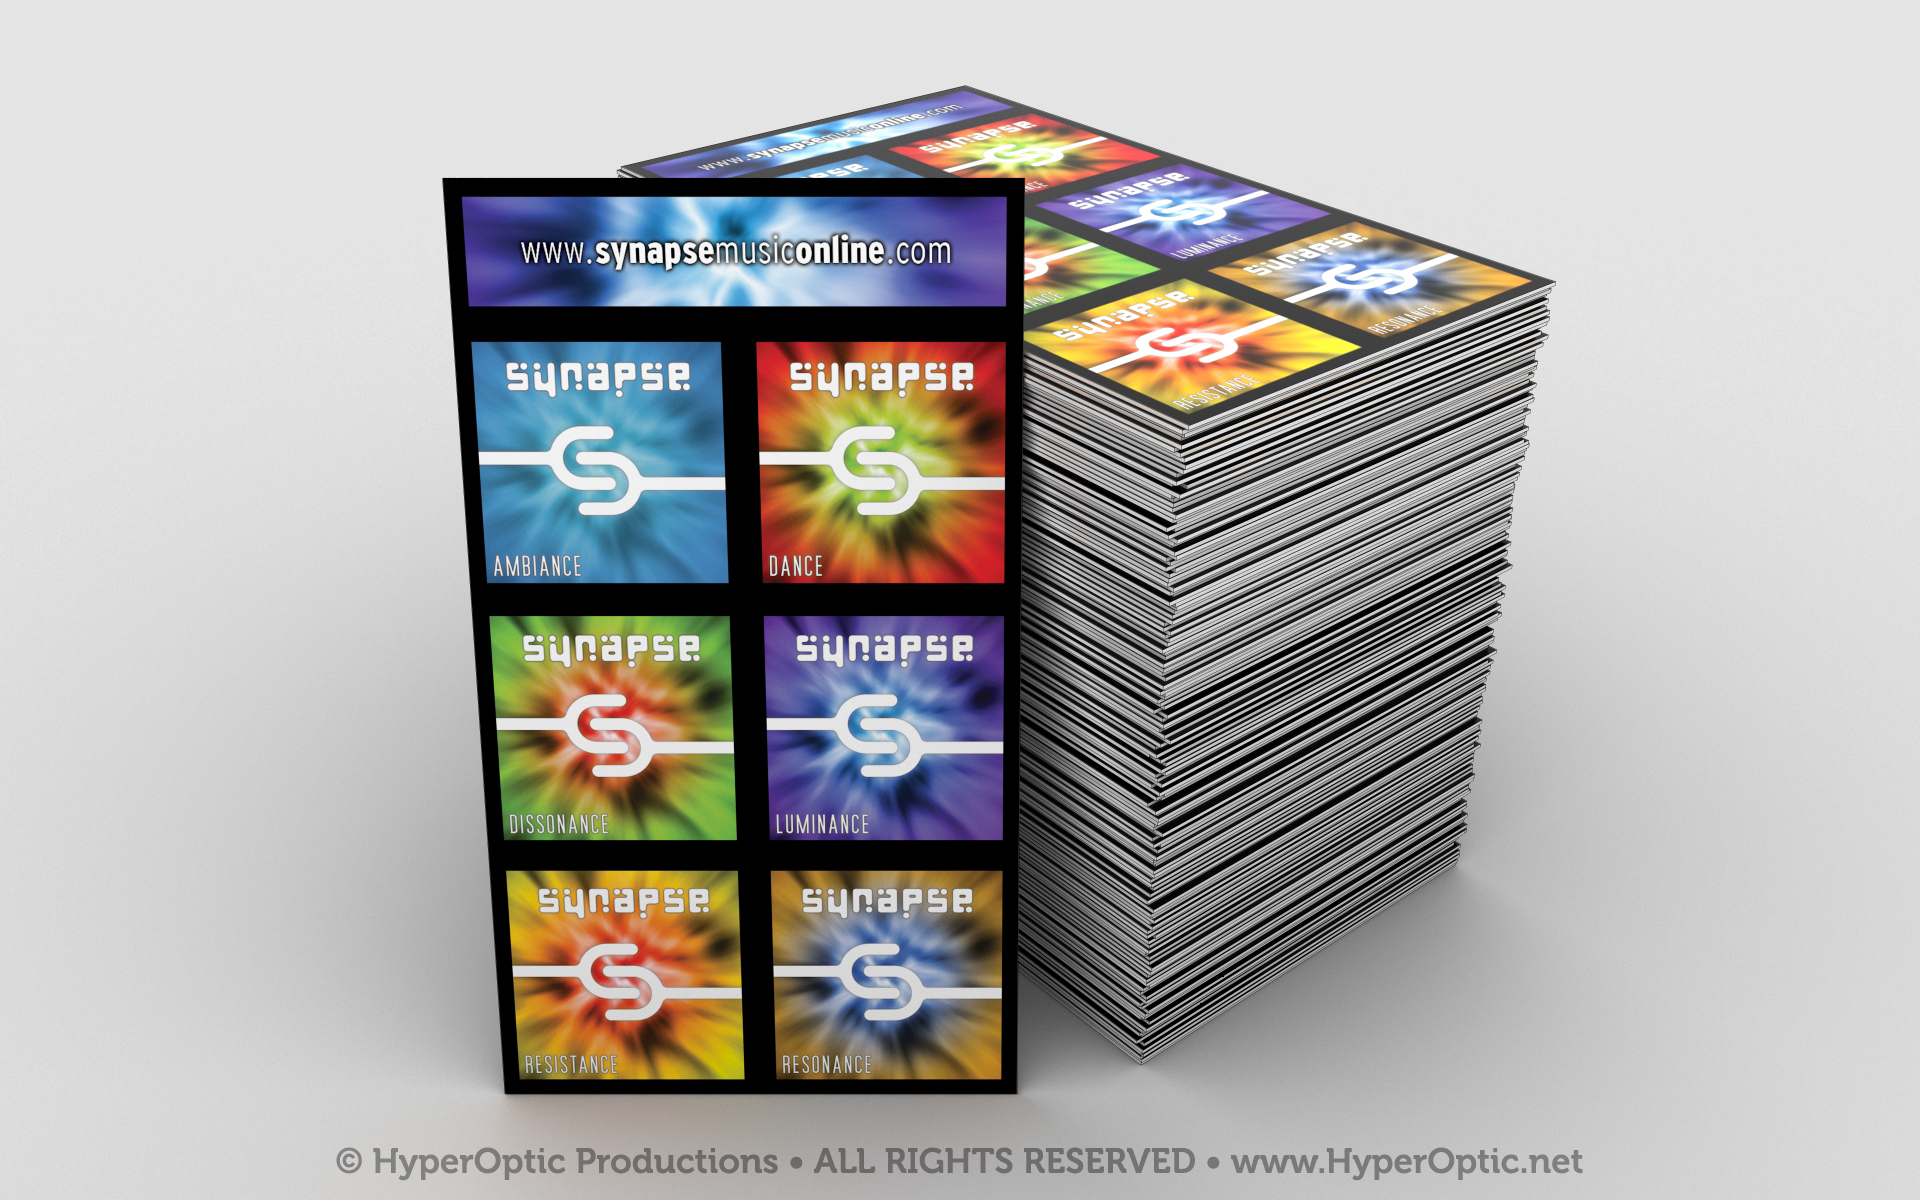 Business-Card-Sample-Visualization---Synapse-Album-Covers-watermarked